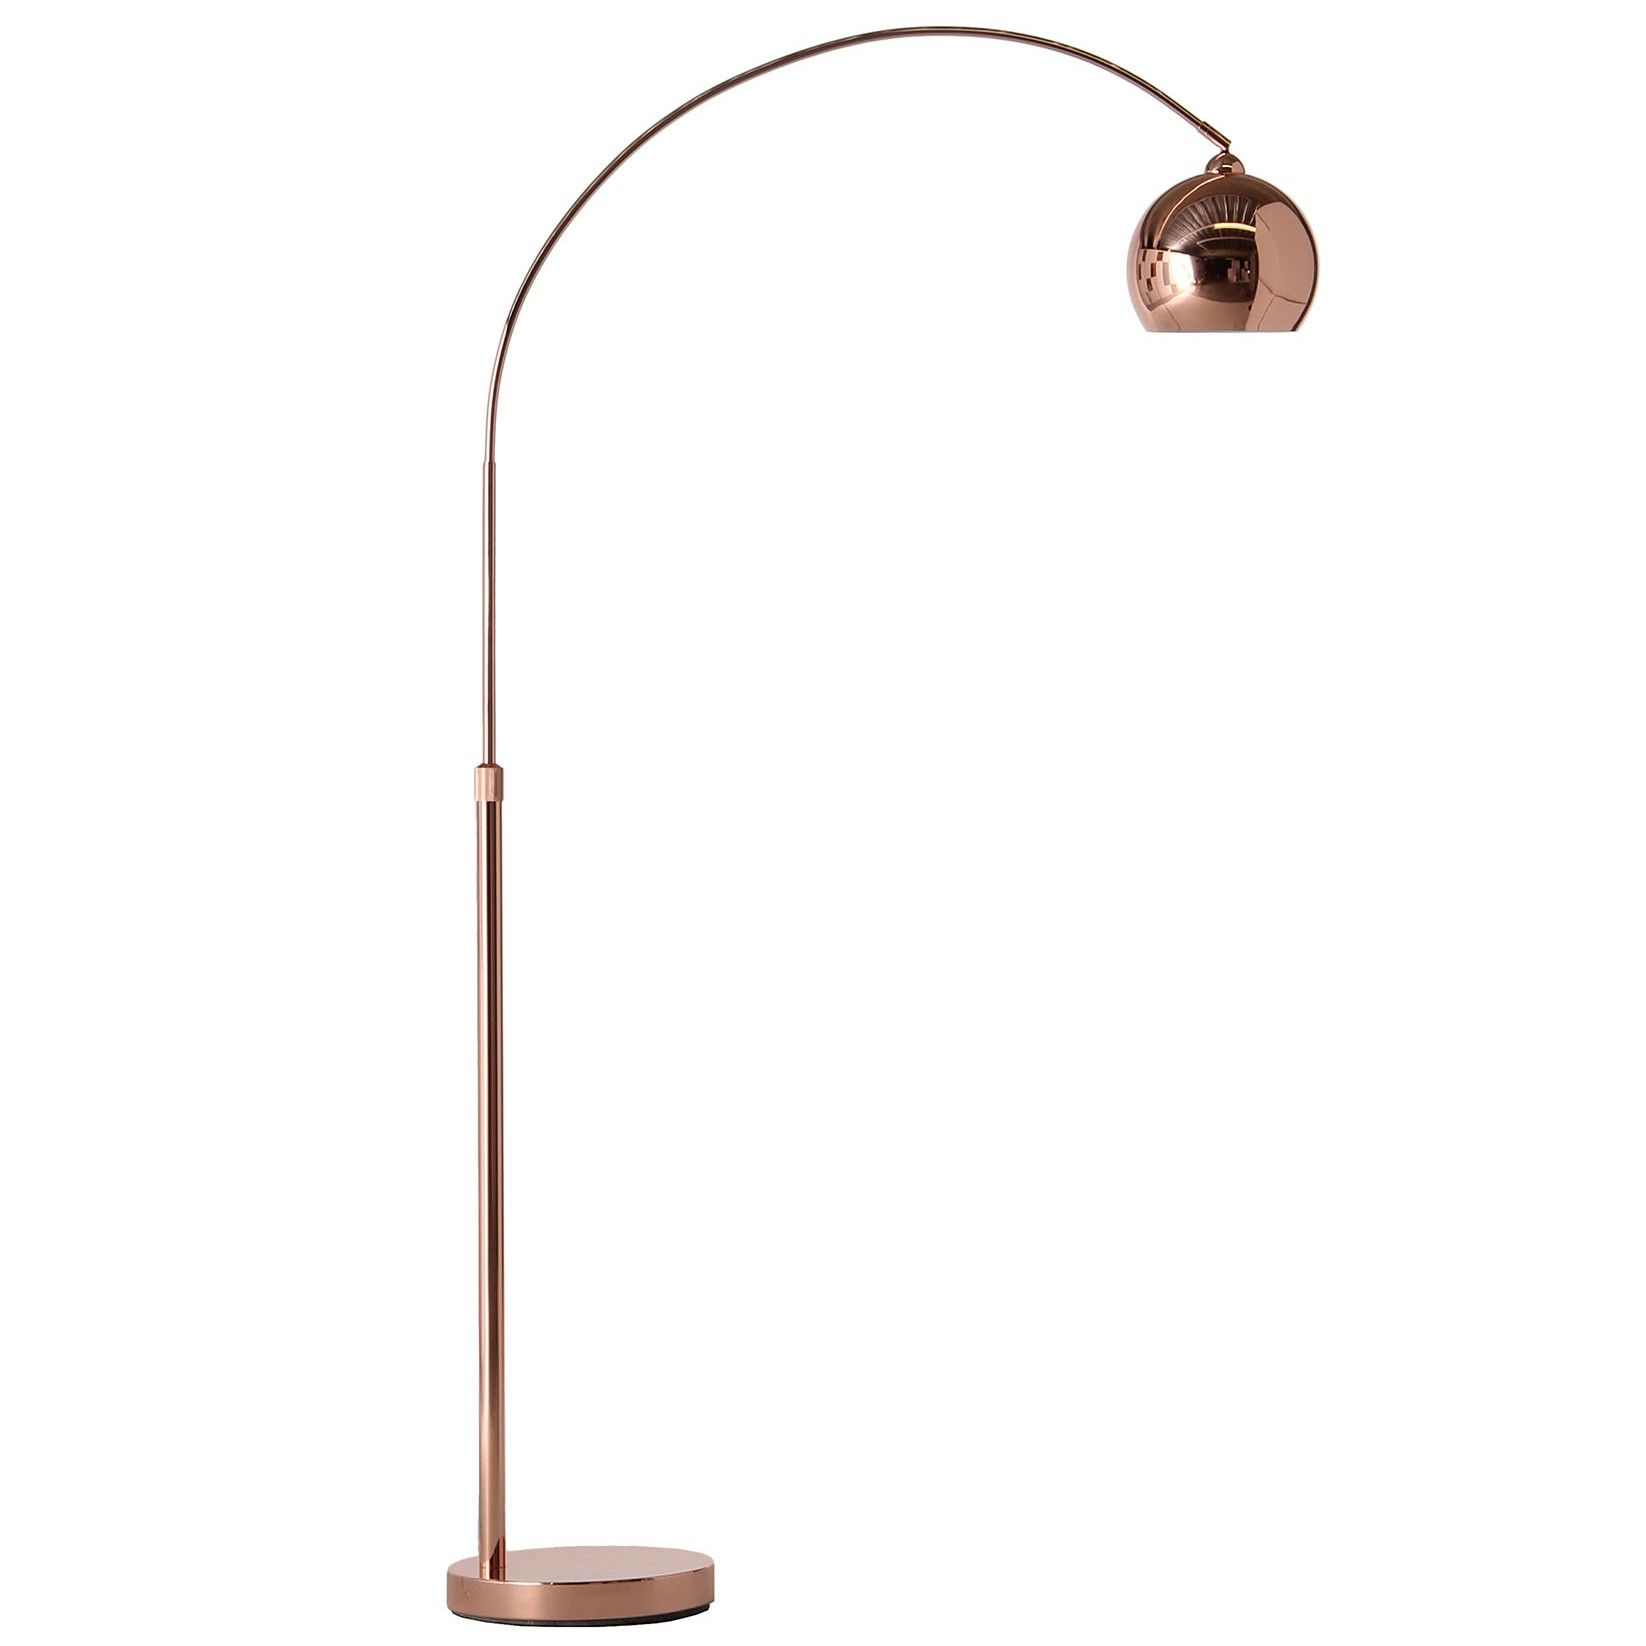 Koperen Staande Lamp Frandsen Lampen Direct Leverbaar Flinders Design